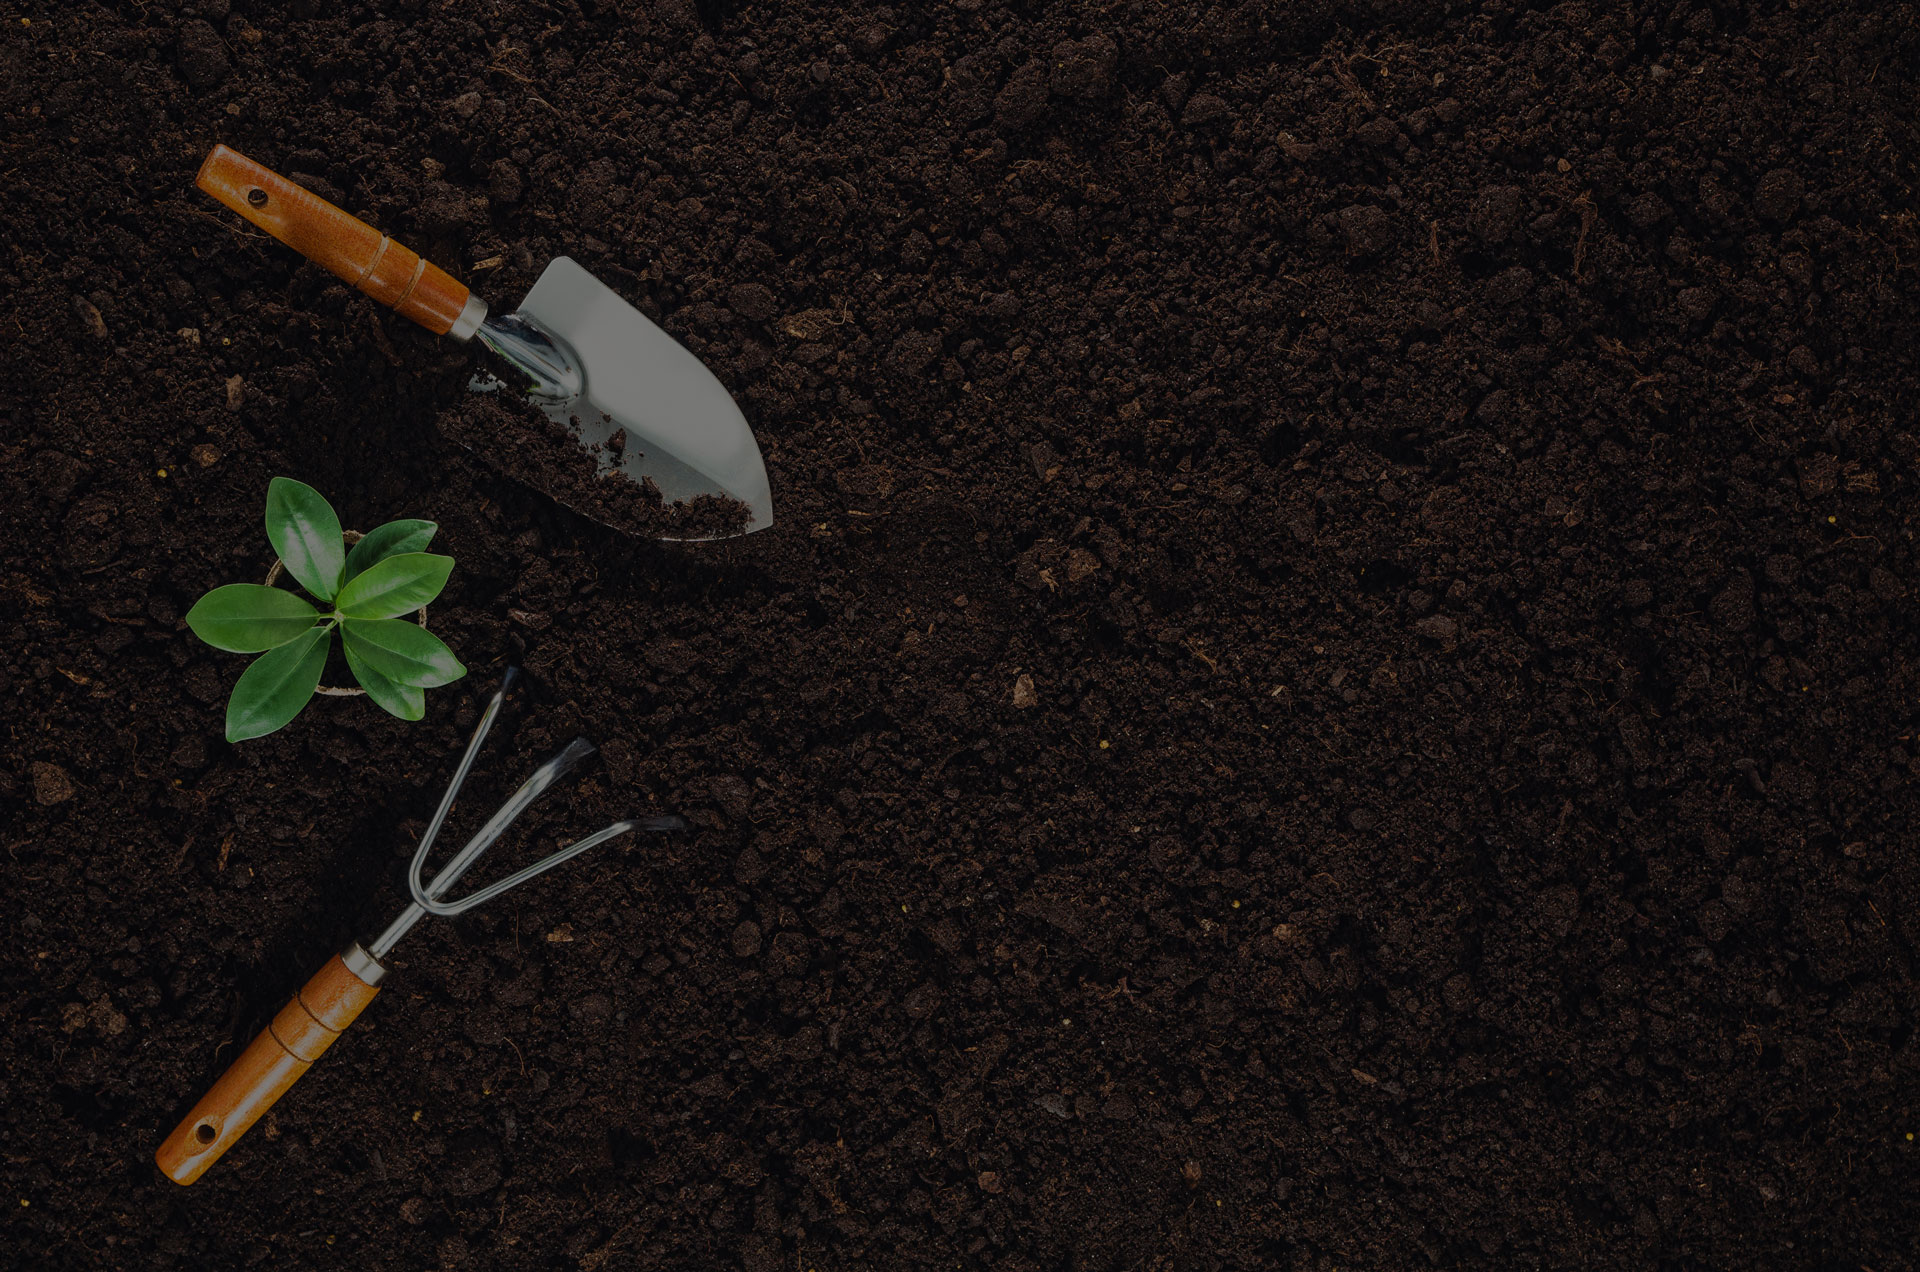 Gardening tools on fertile soil texture background seen from above top view